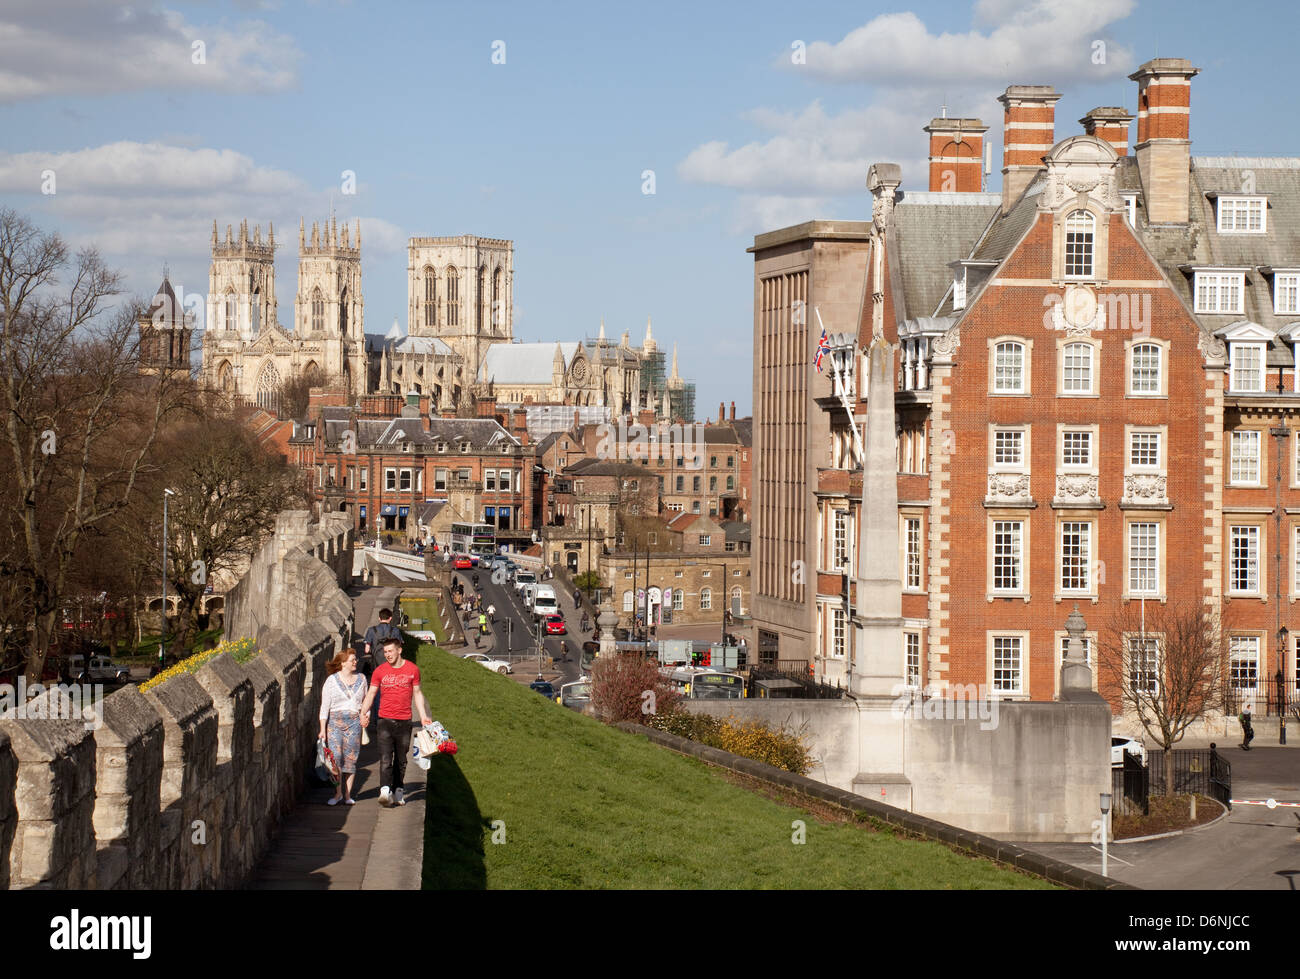 People walking on the old city walls, York, Yorkshire UK - Stock Image